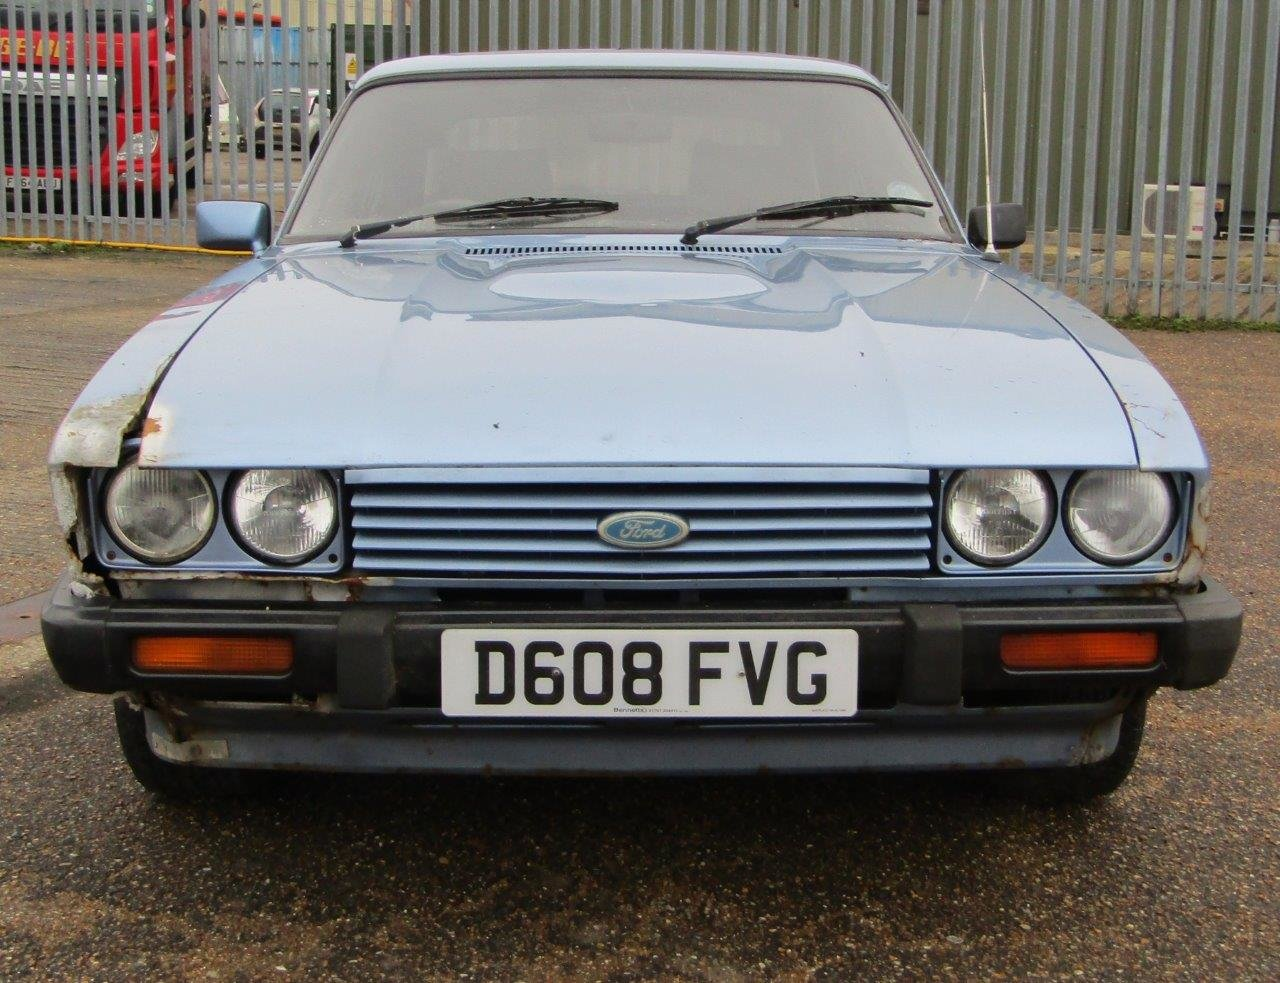 1986 Ford Capri 1.6 Laser at ACA 27th and 28th February For Sale by Auction (picture 2 of 11)